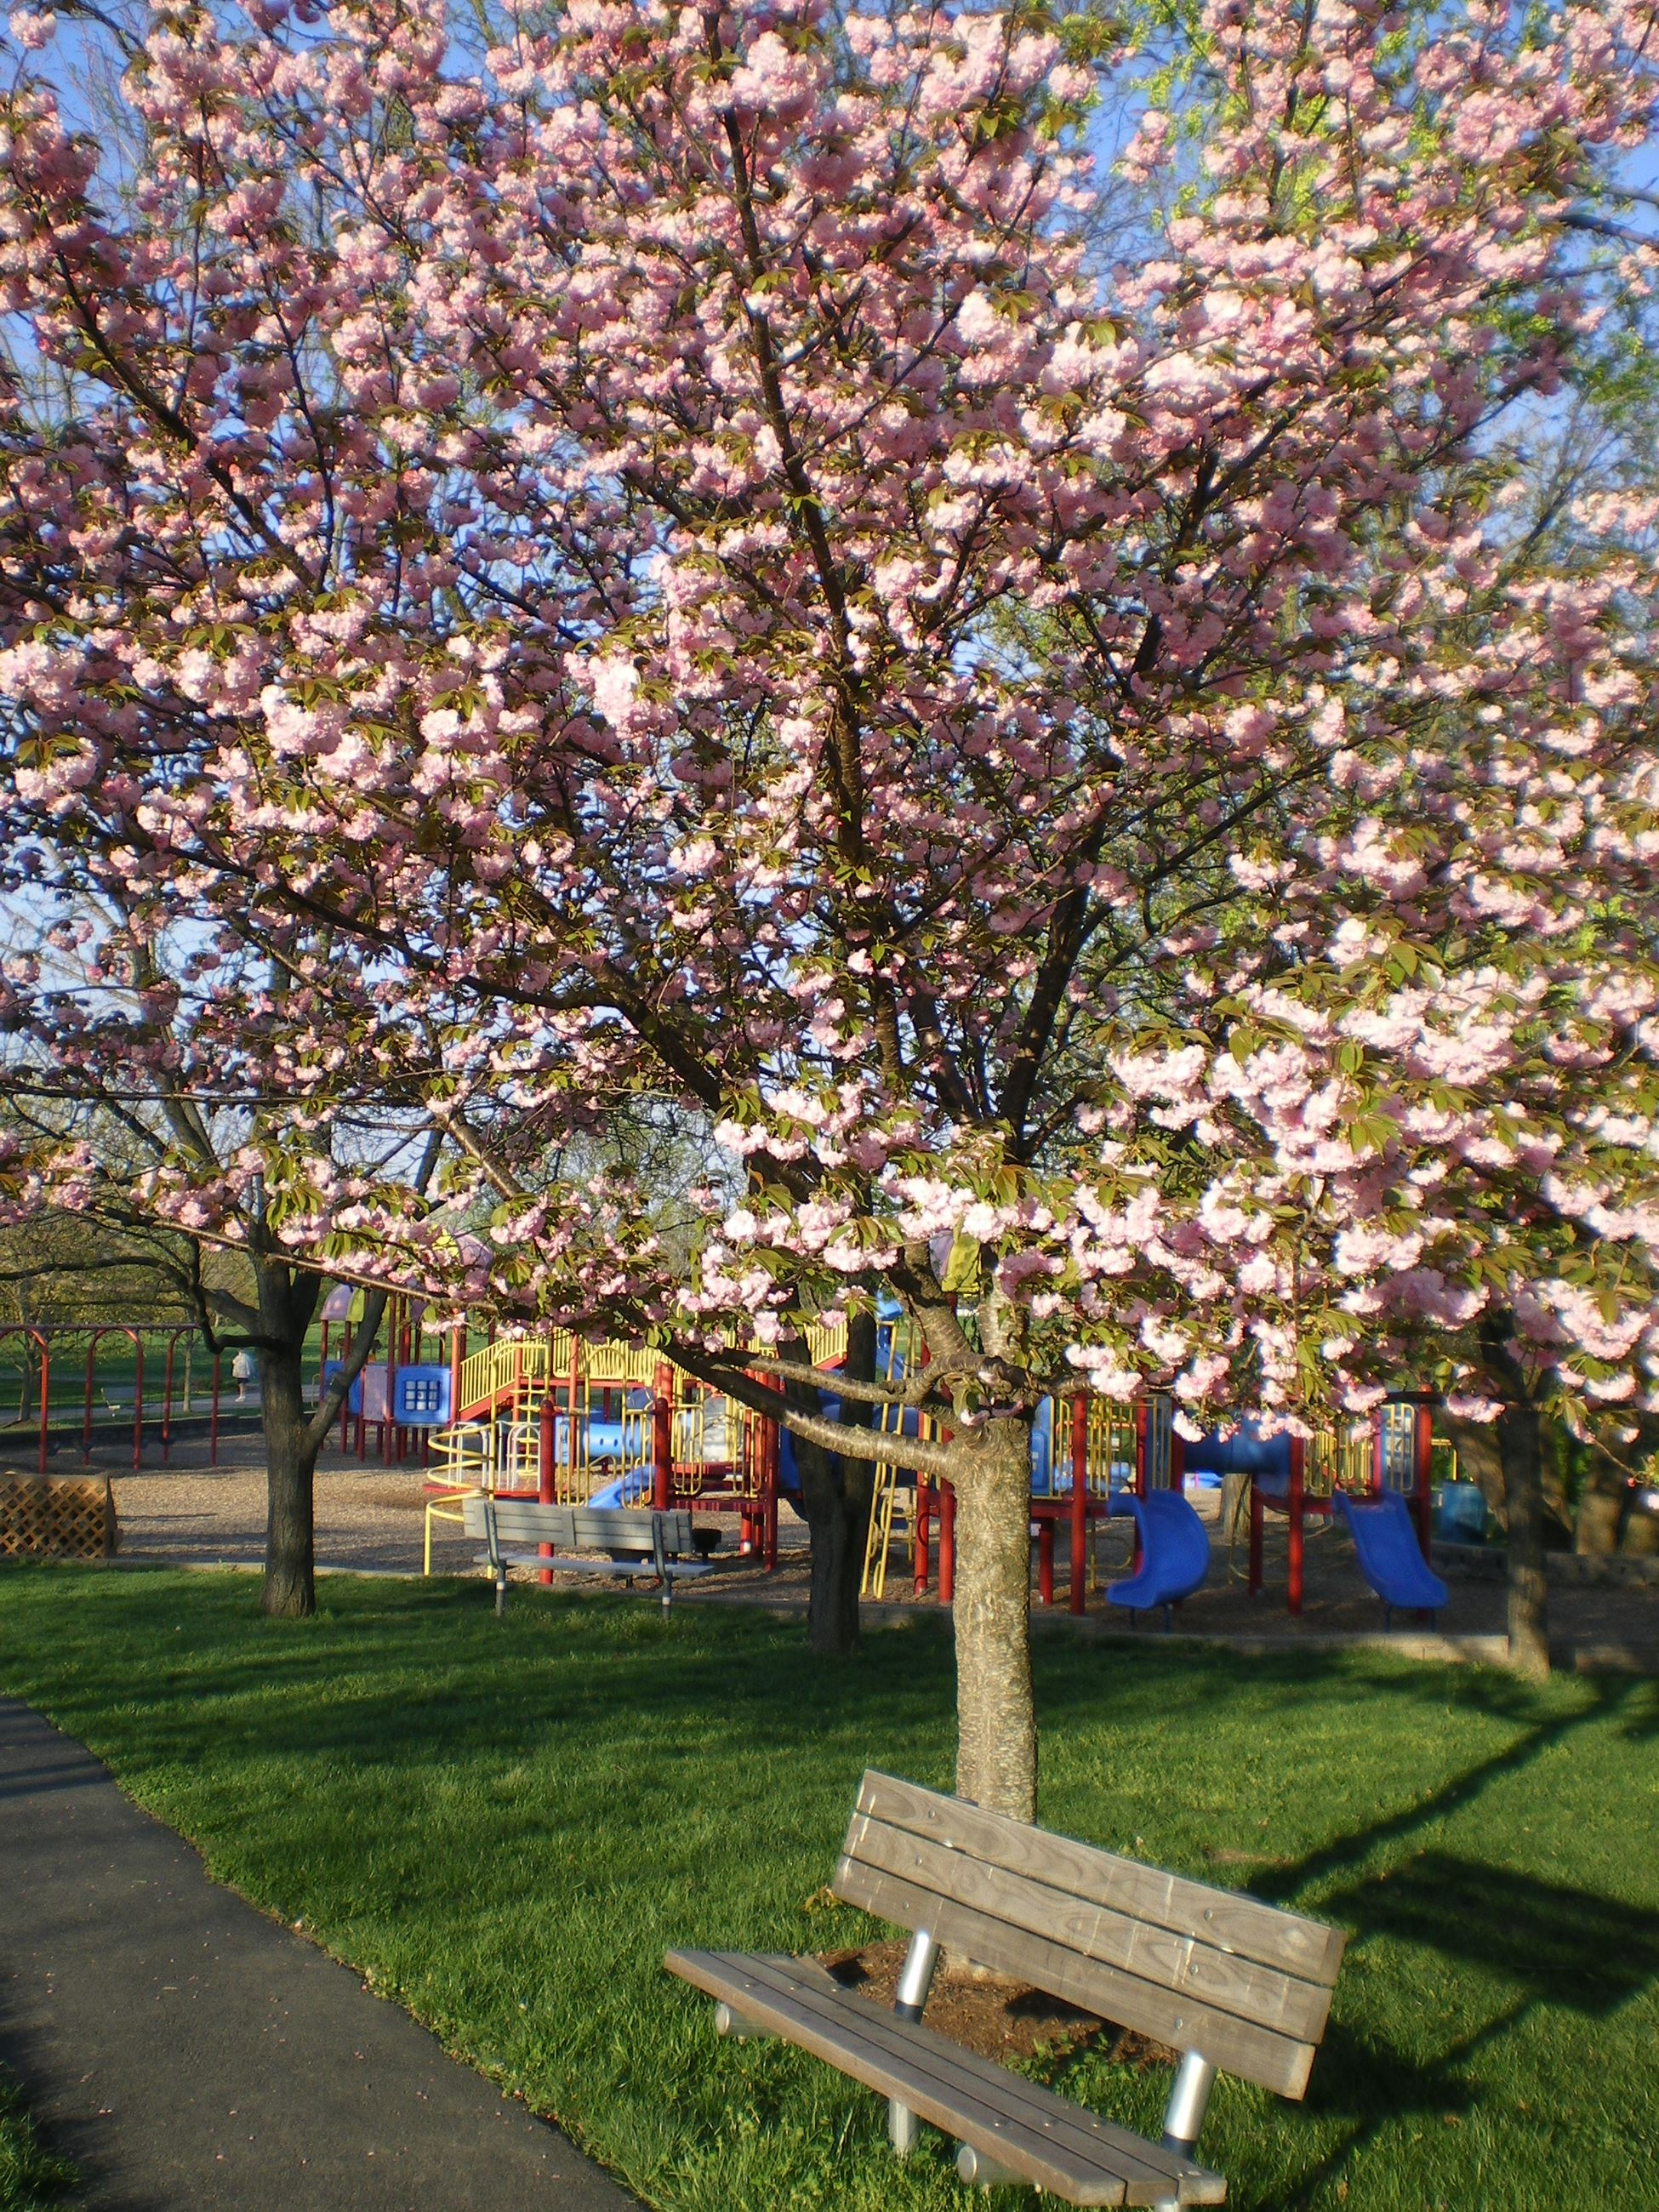 Tree and bench at playground